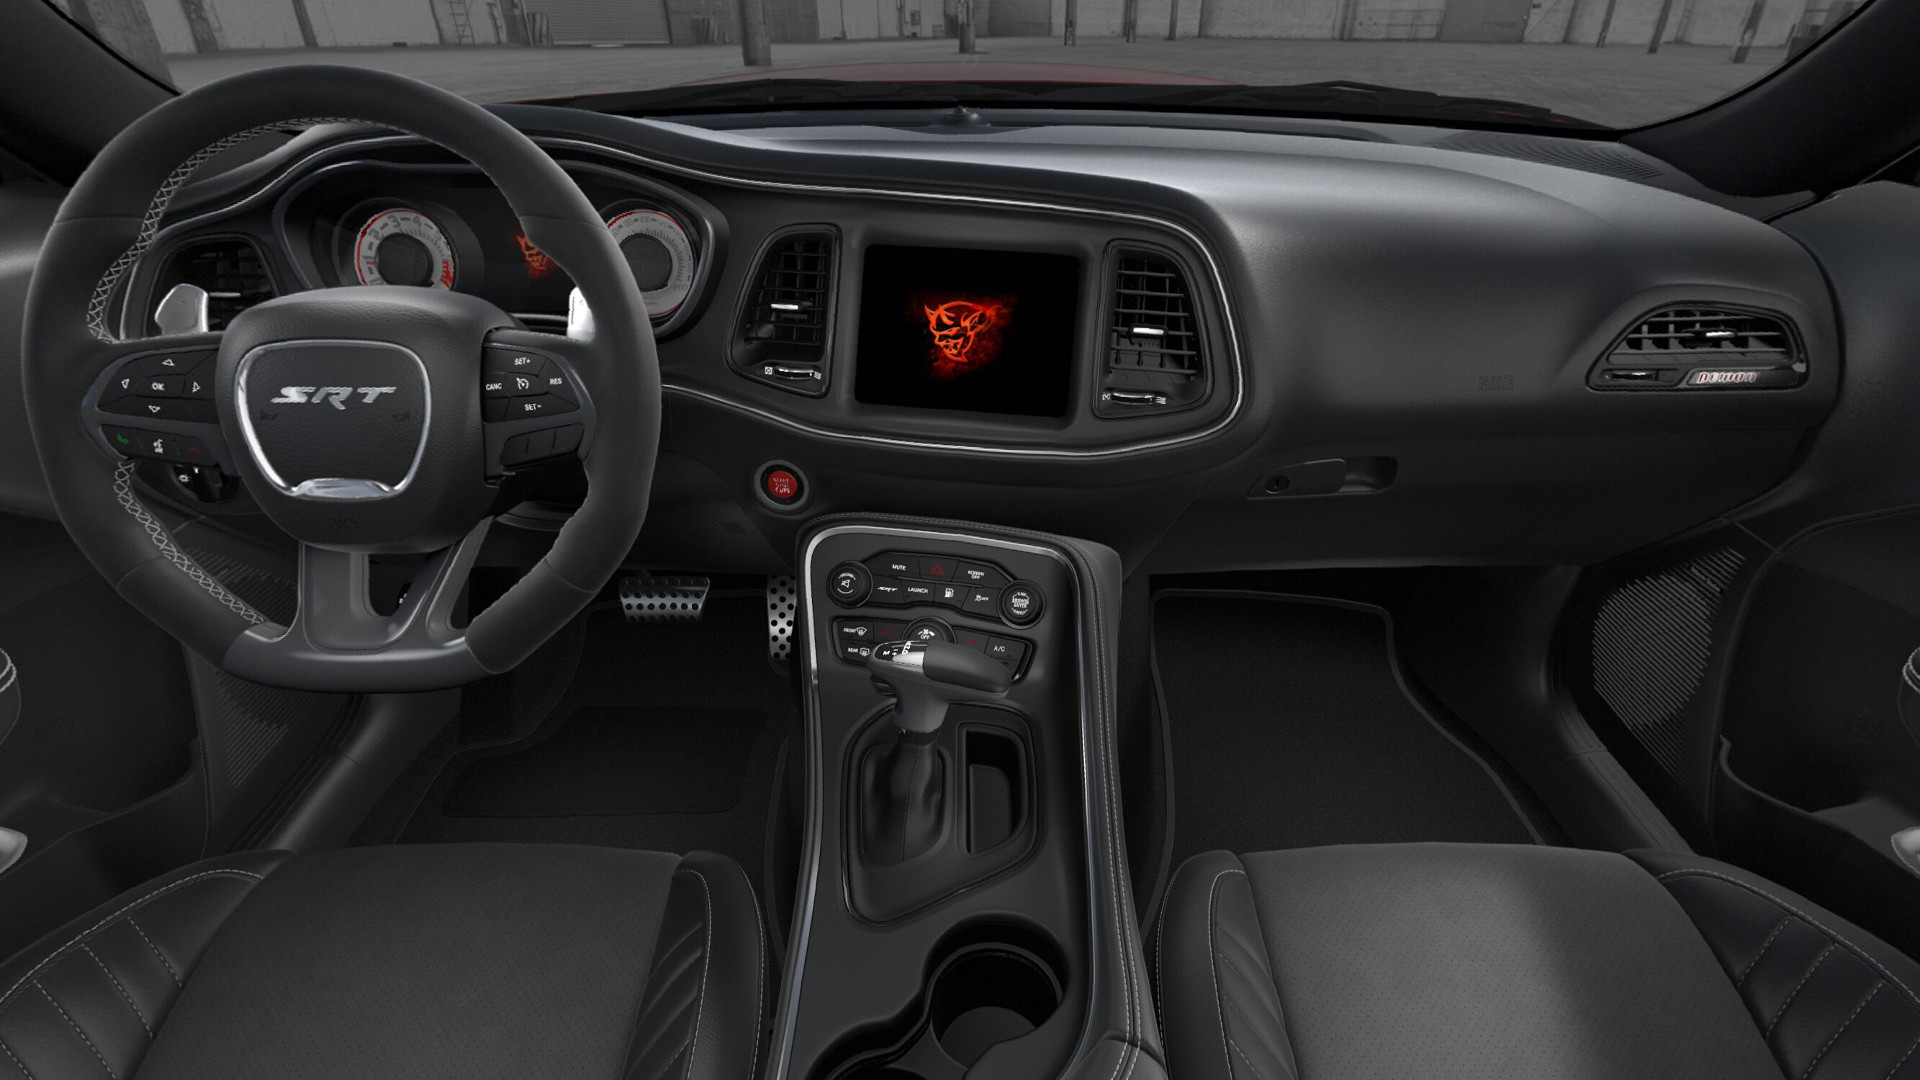 The Official 2018 Dodge Challenger Srt Demon Configurator Demands